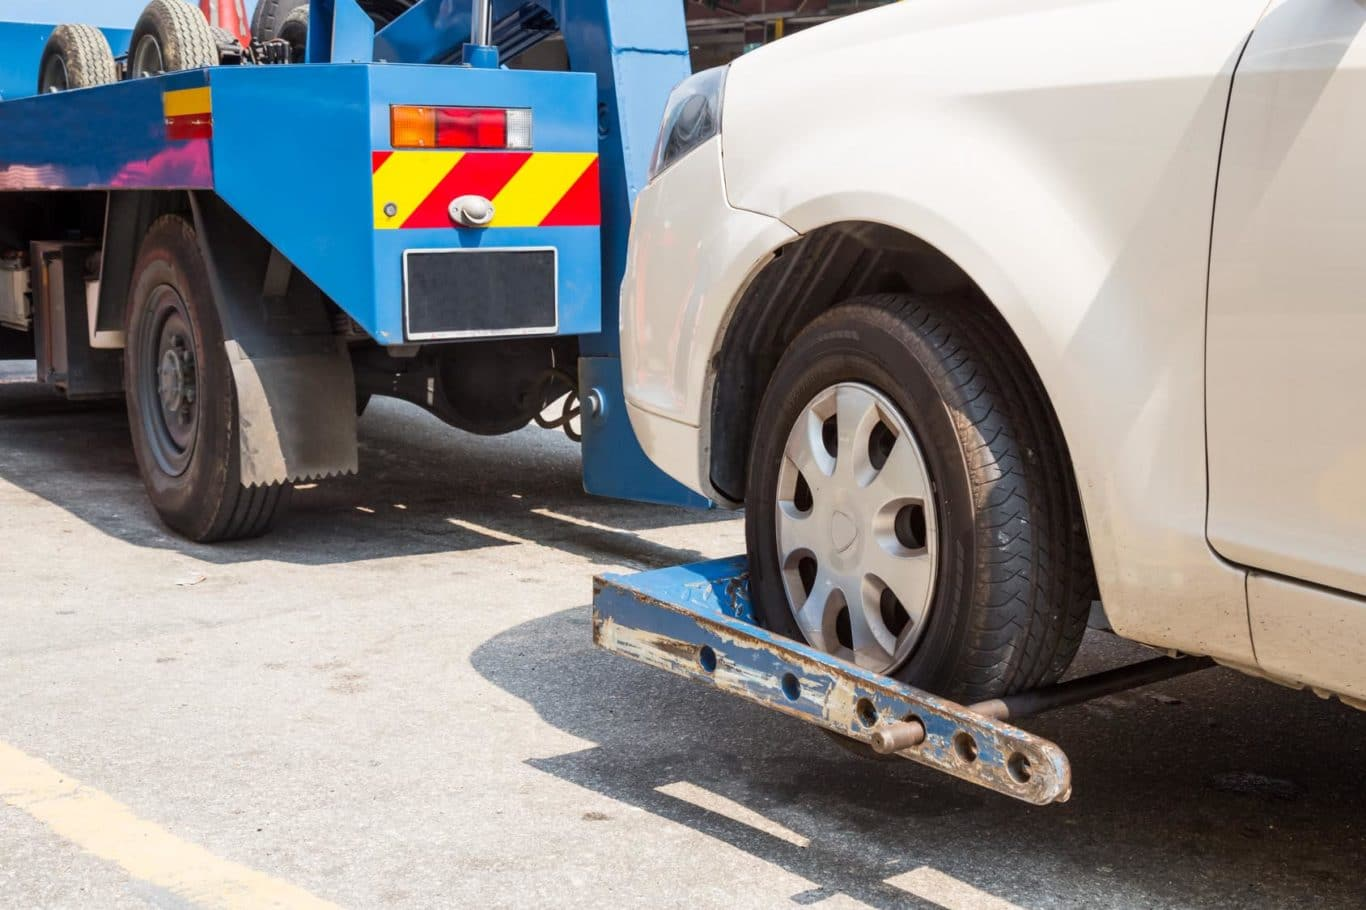 Rathcoole expert Car Recovery services